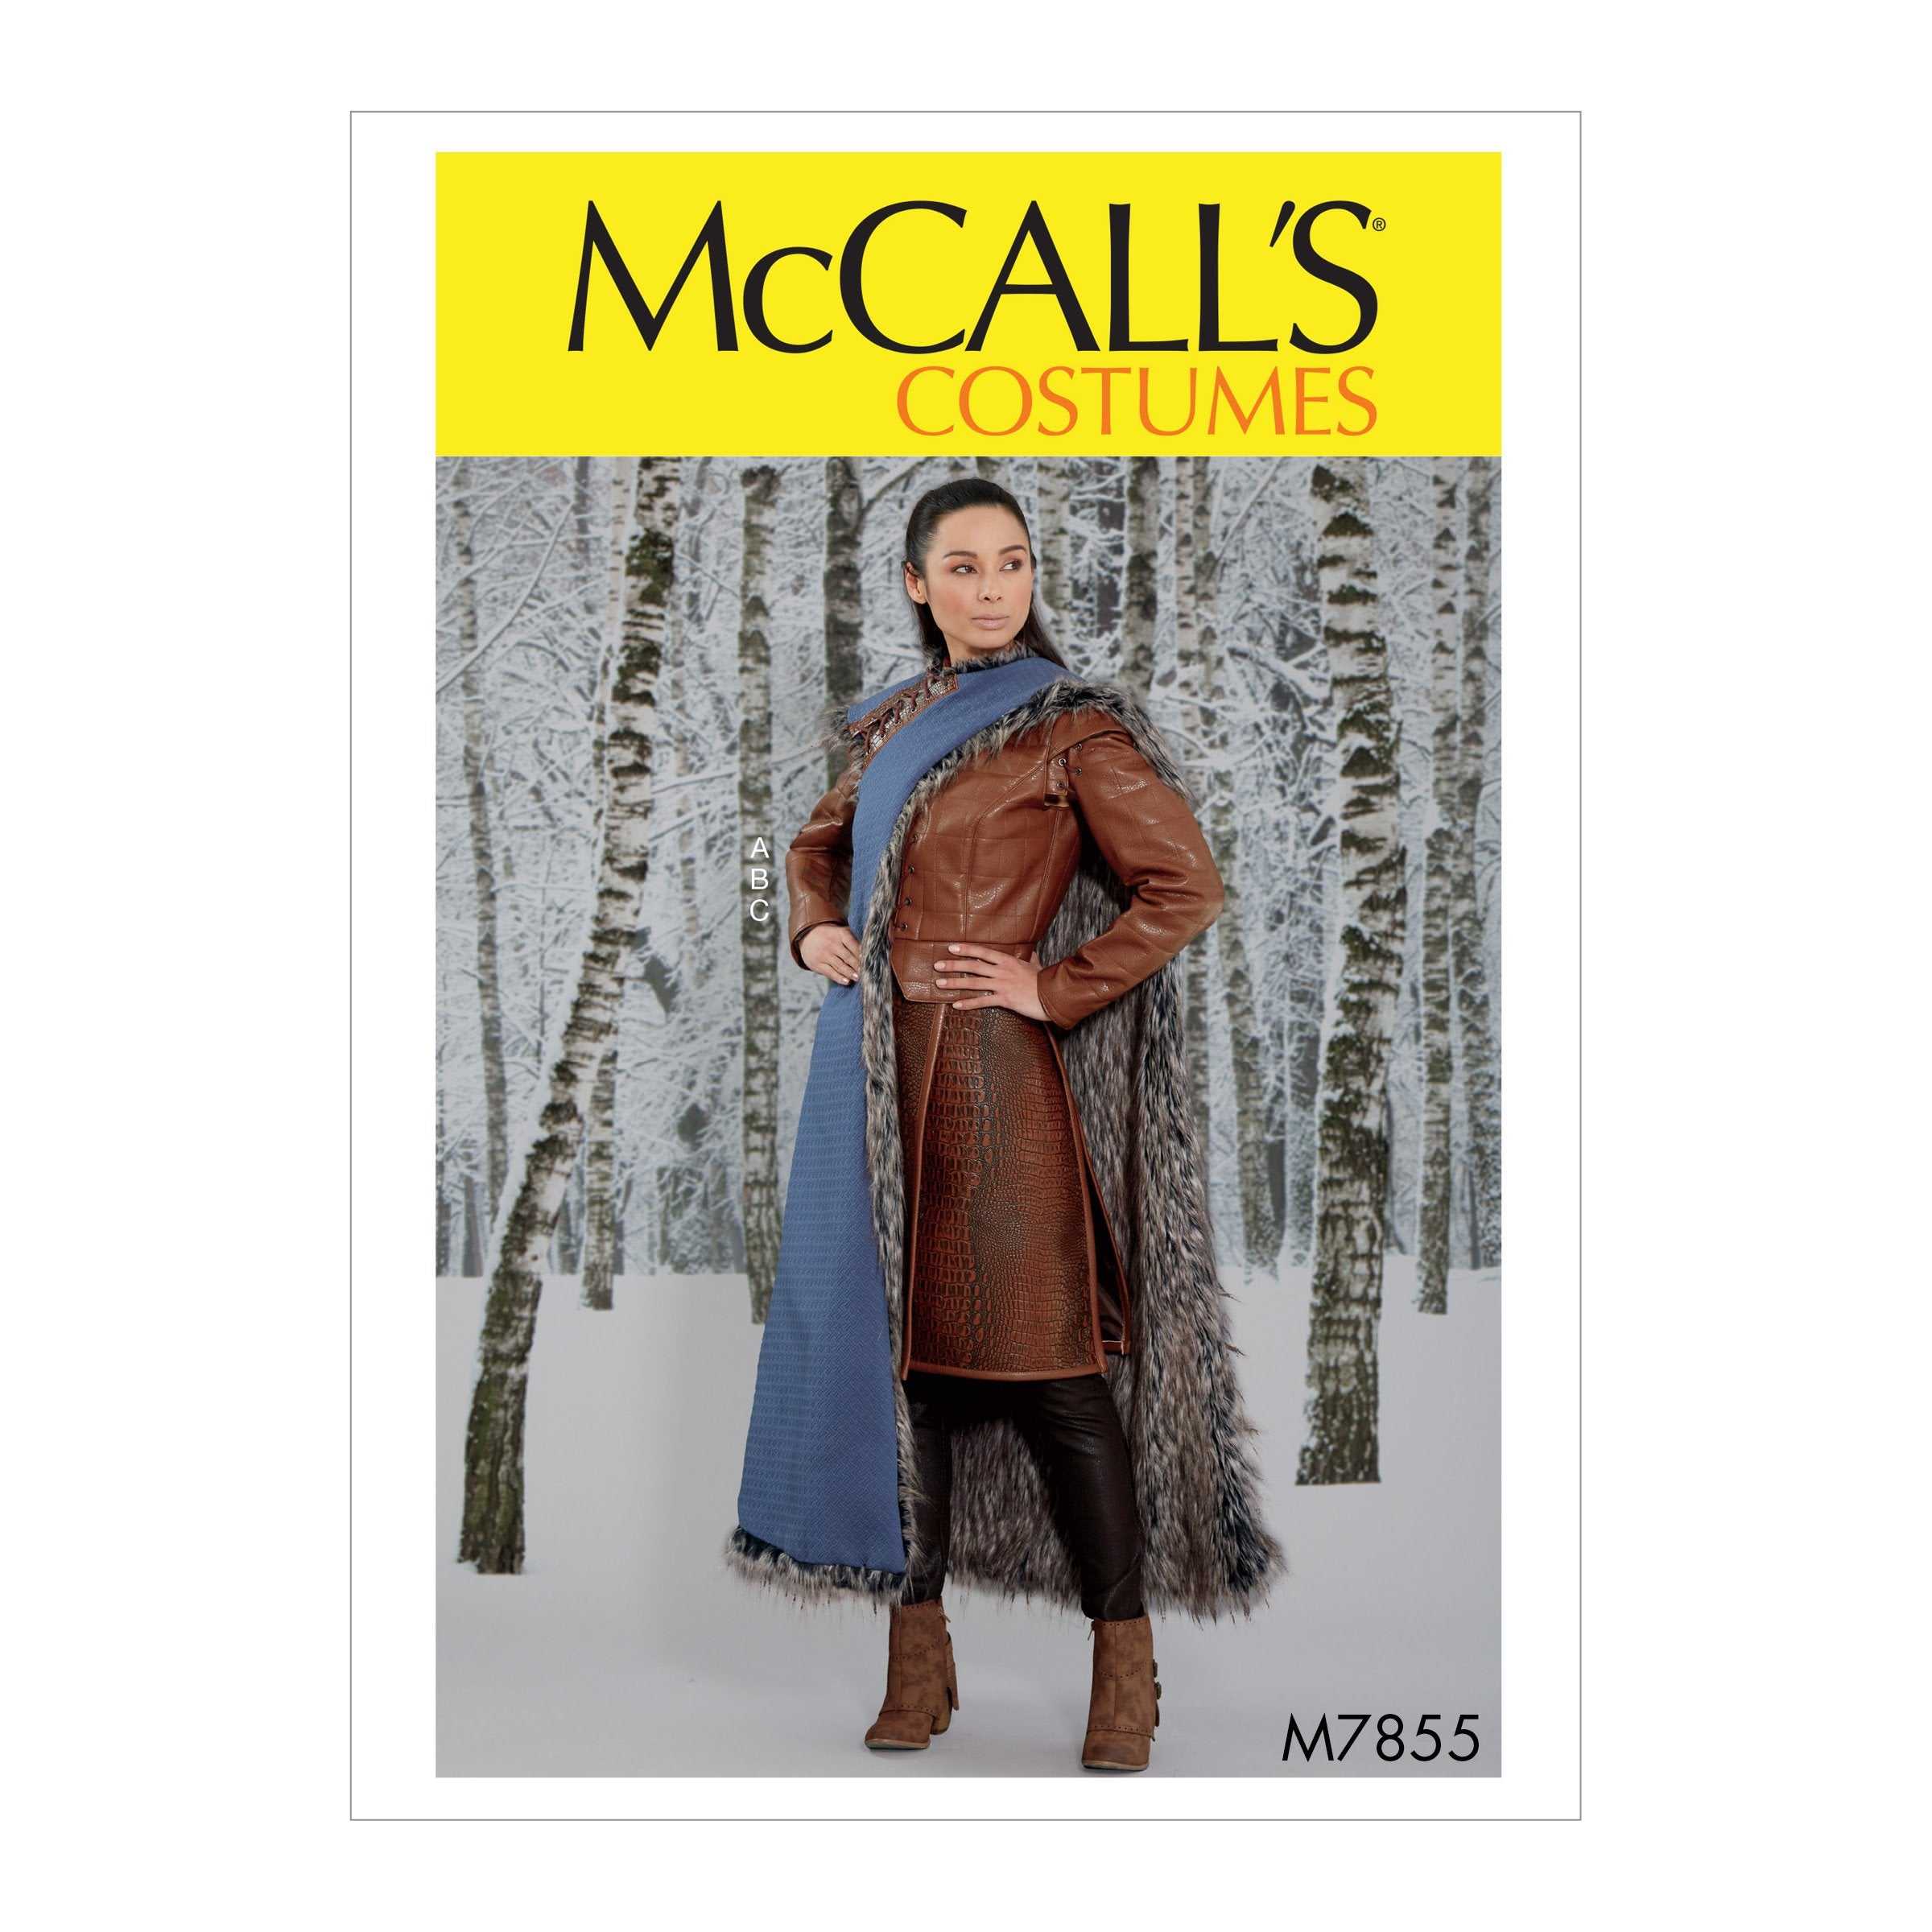 M7855 Misses' costume pattern